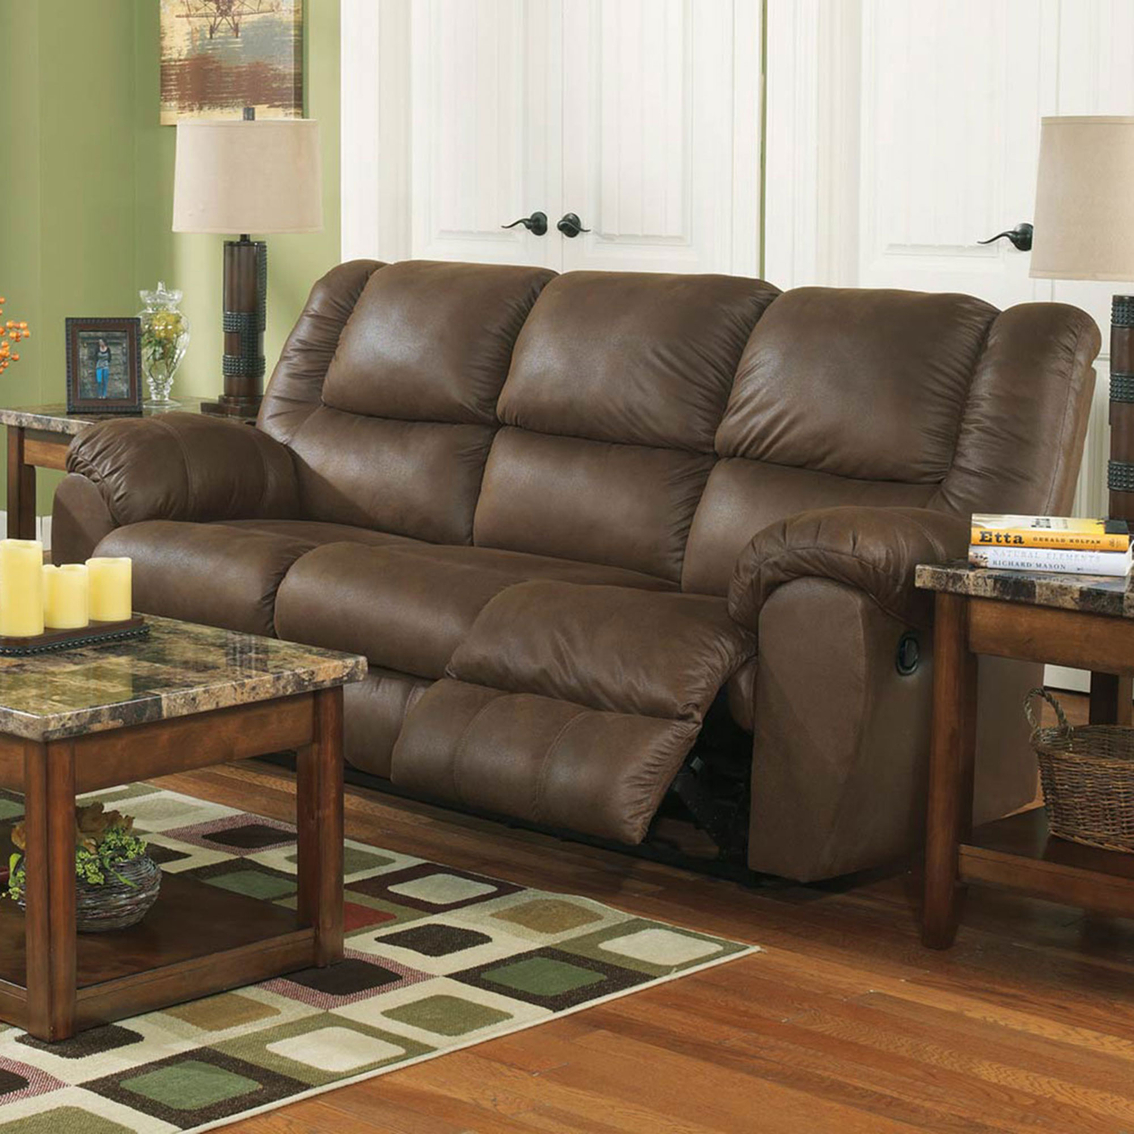 ... Mit Furniture Exchange 13 Reviews Furniture Stores By Reclining Sofa  Sofas Couches Home